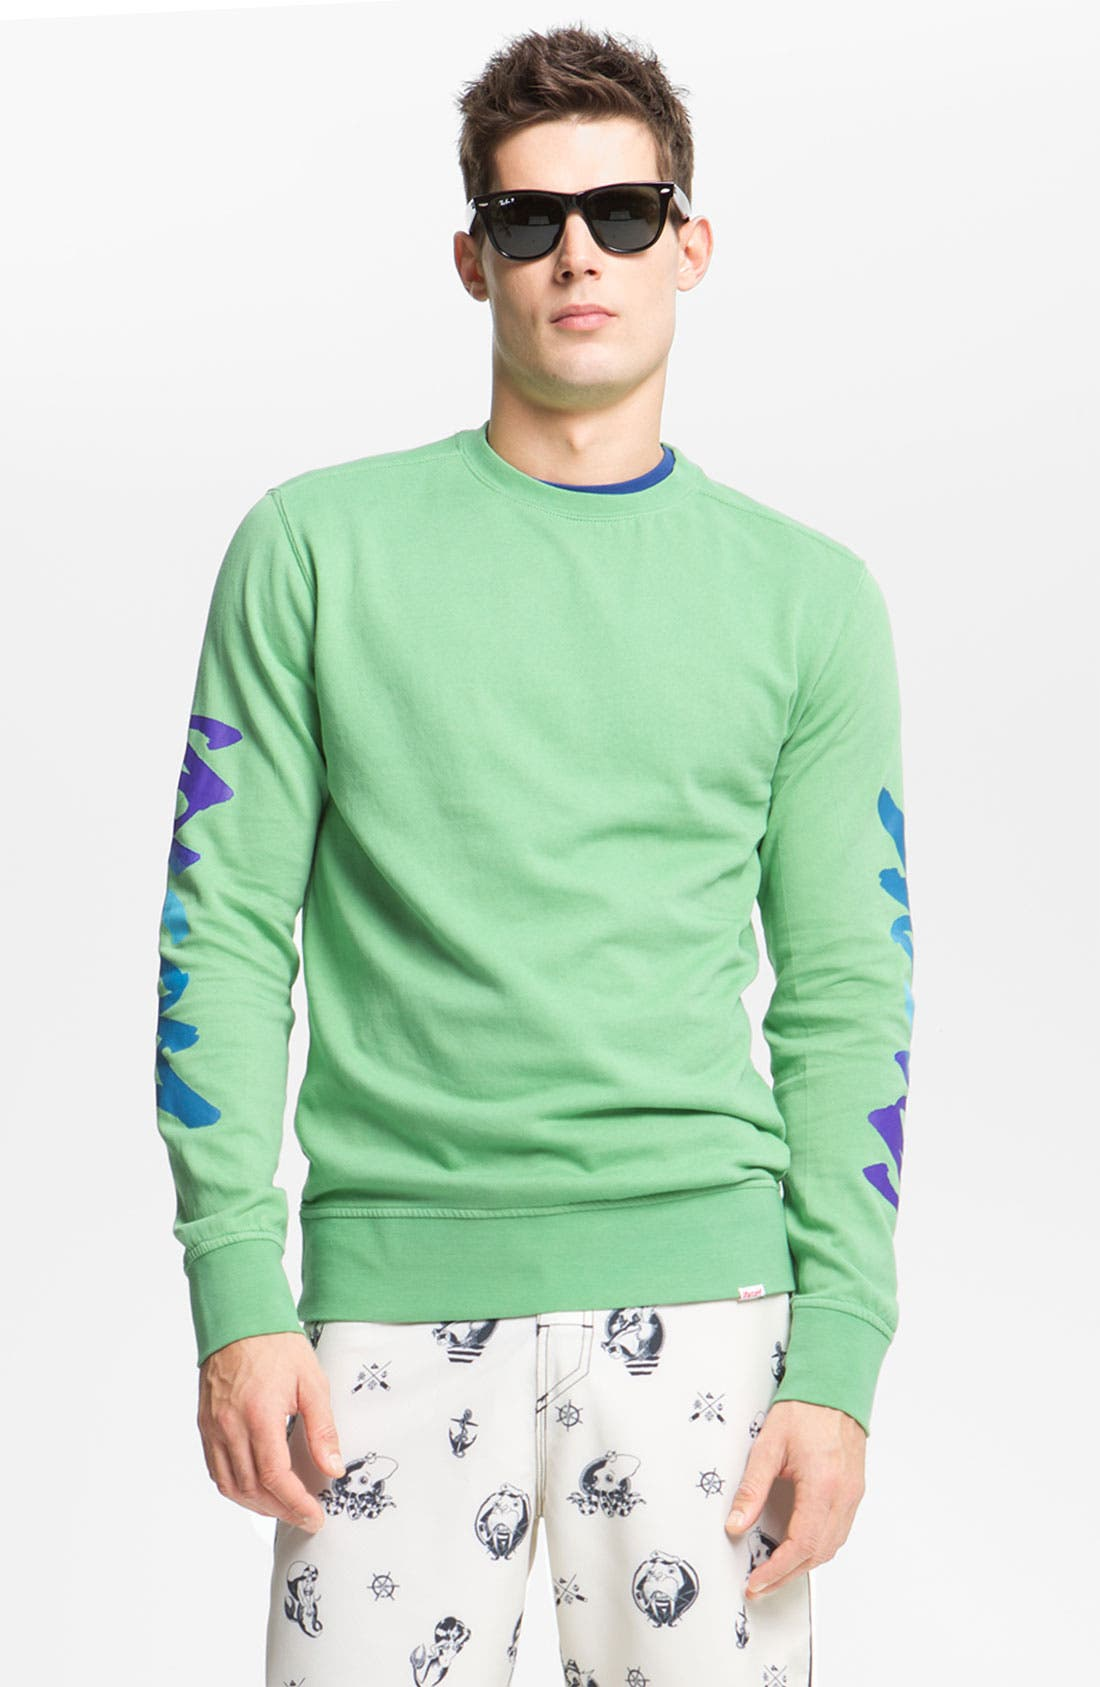 Alternate Image 1 Selected - Volcom 'Radikal' Crewneck Sweatshirt